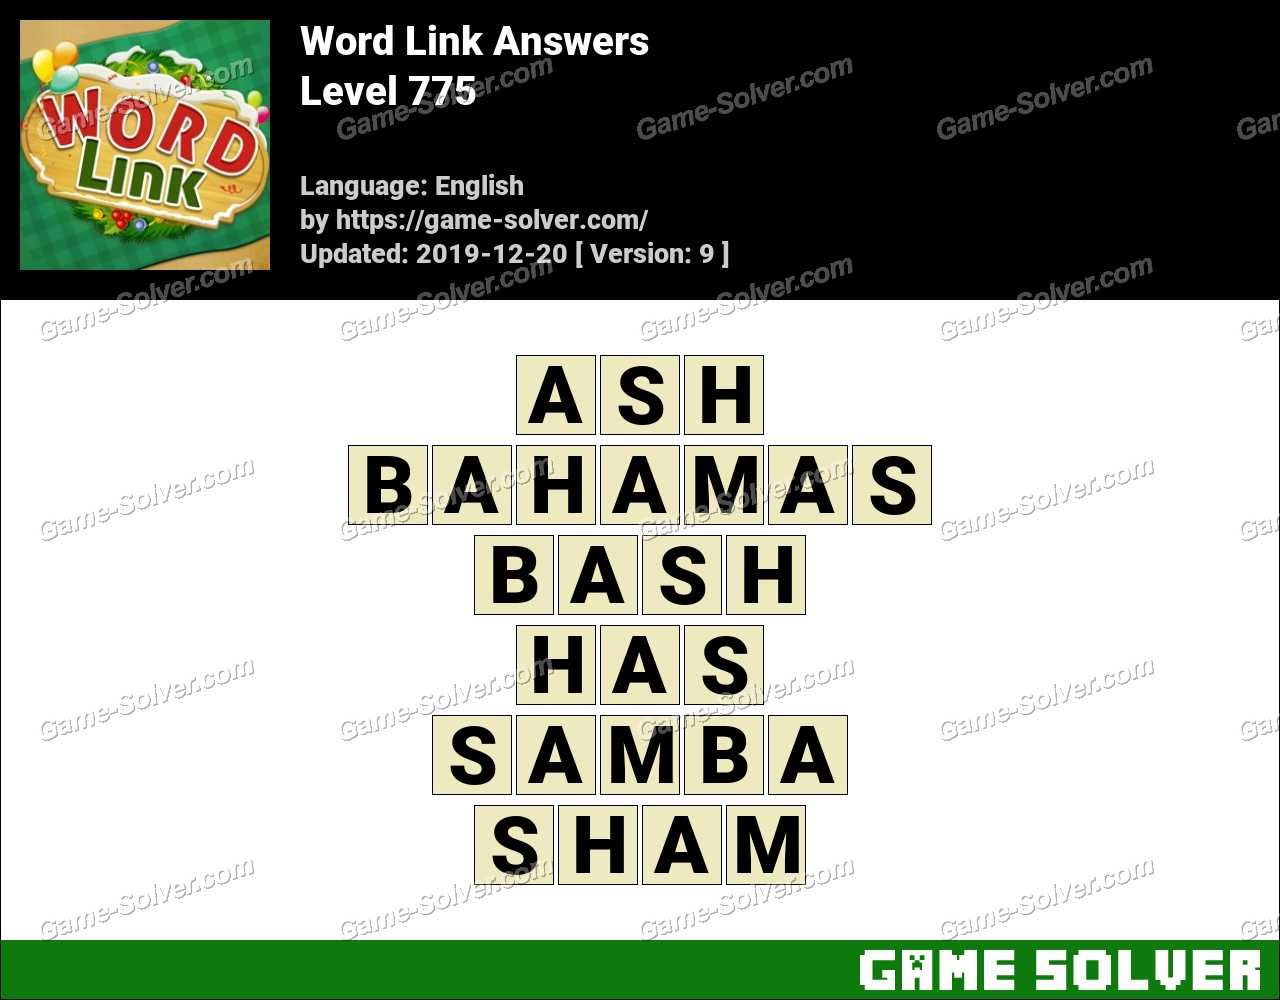 Word Link Level 775 Answers